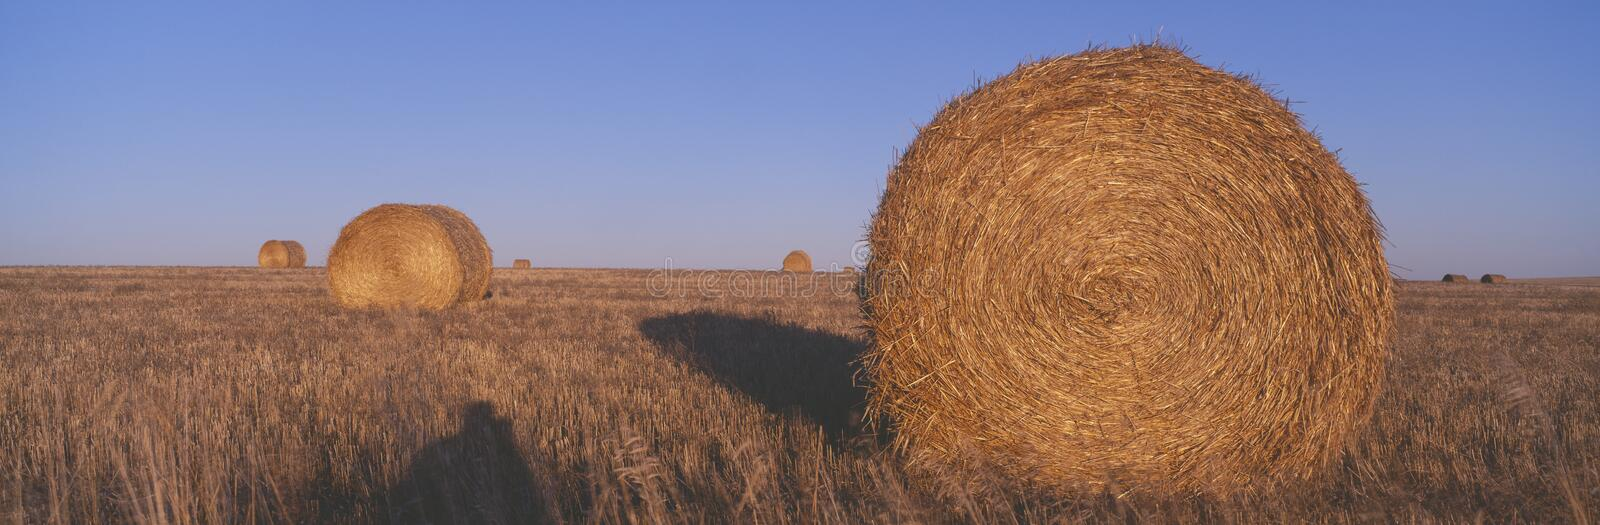 Download Hay Bails, Stock Image - Image: 23171171